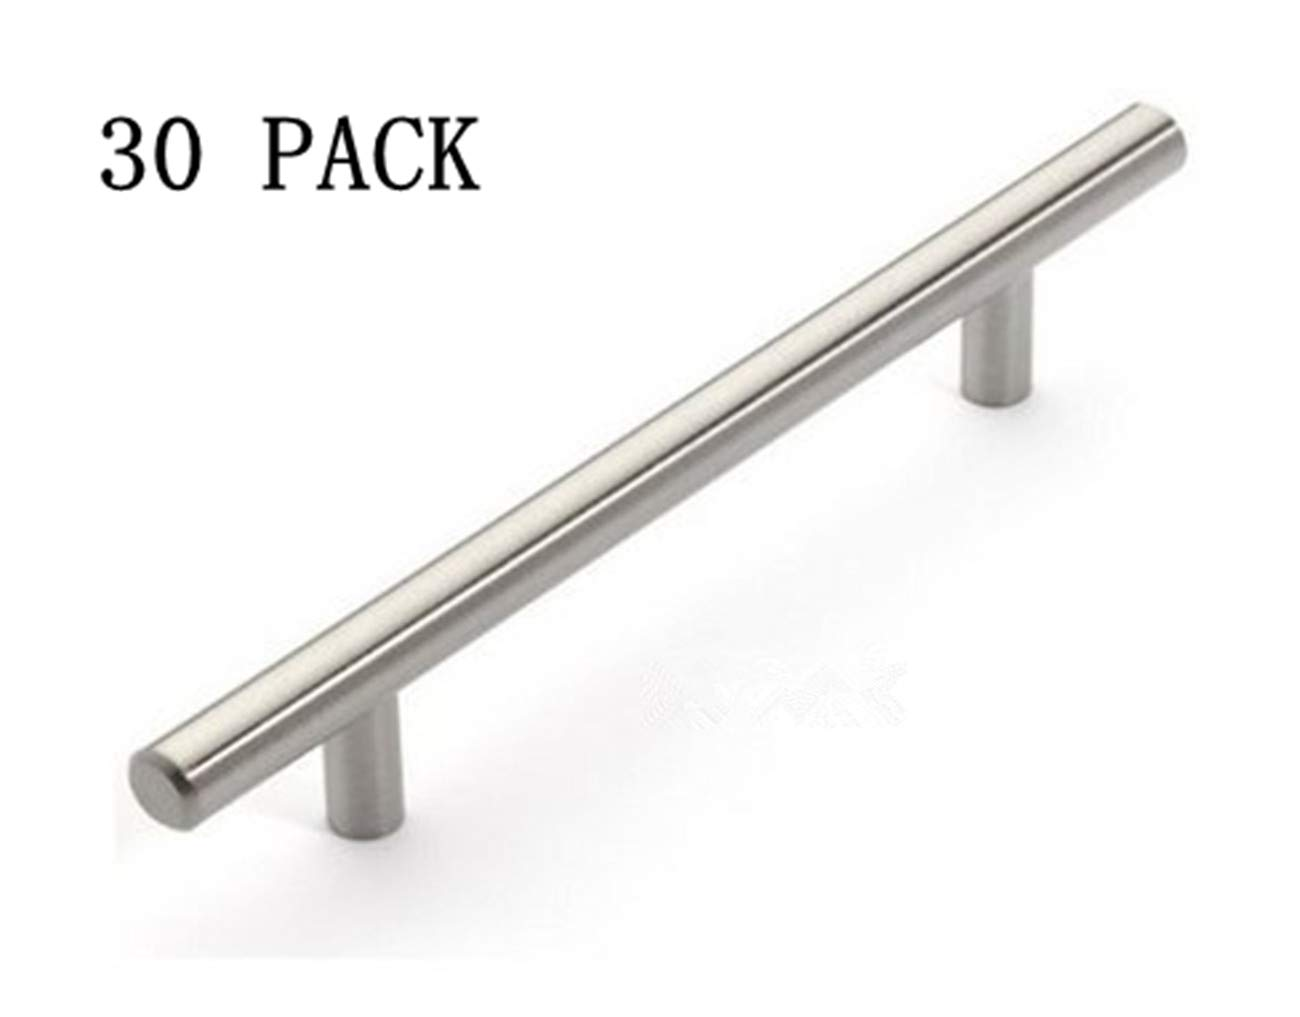 12mm Stainless Steel Kitchen Cabinet Handles T Bar Pull (6'' Overall Length,3.8'' Hole Centers) by Wang-Data (Image #1)